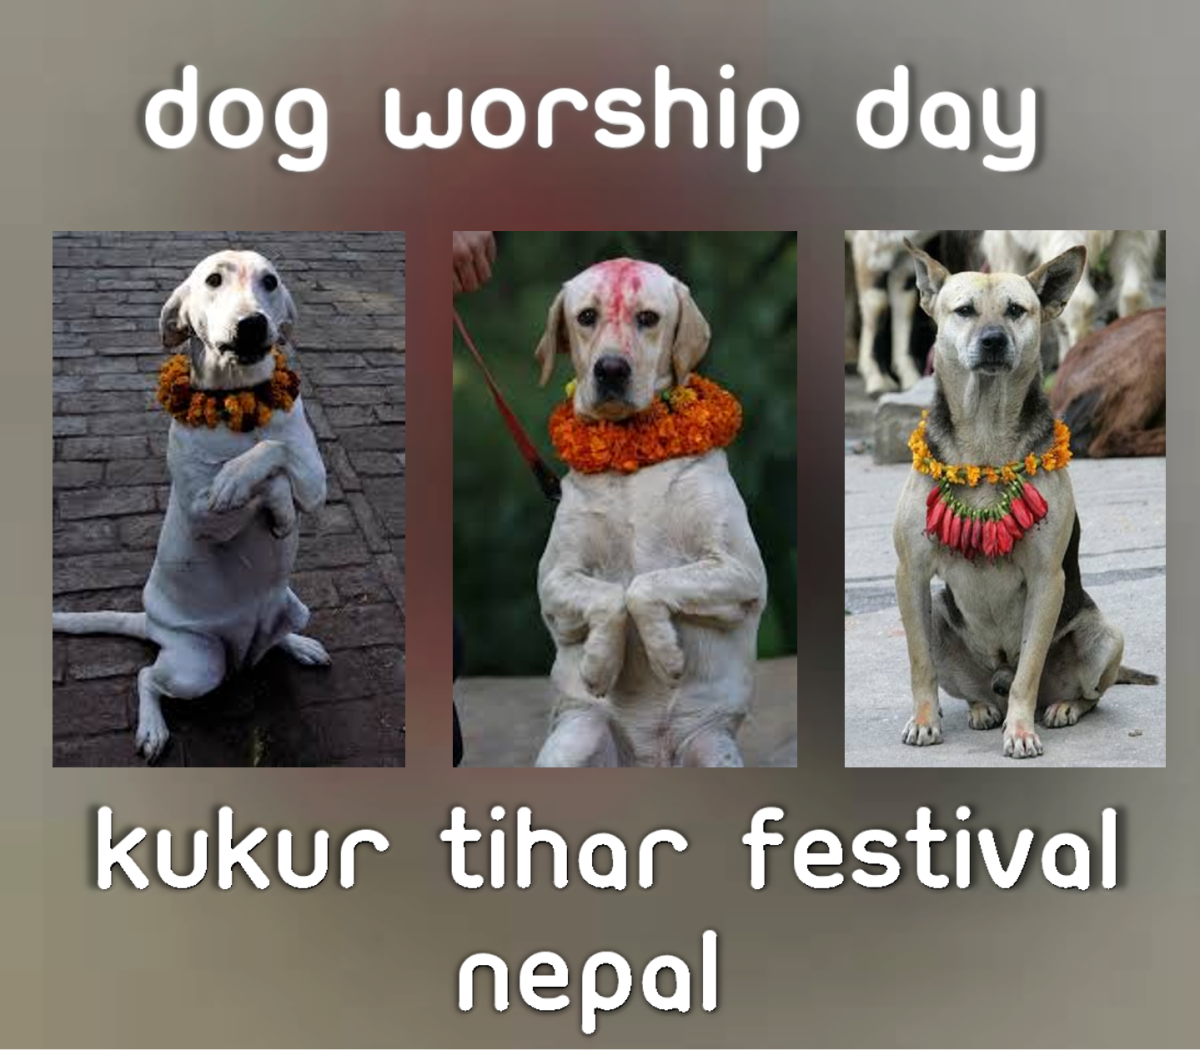 Kukur Tihar Festival and Hindu's Conviction to Dog Worship